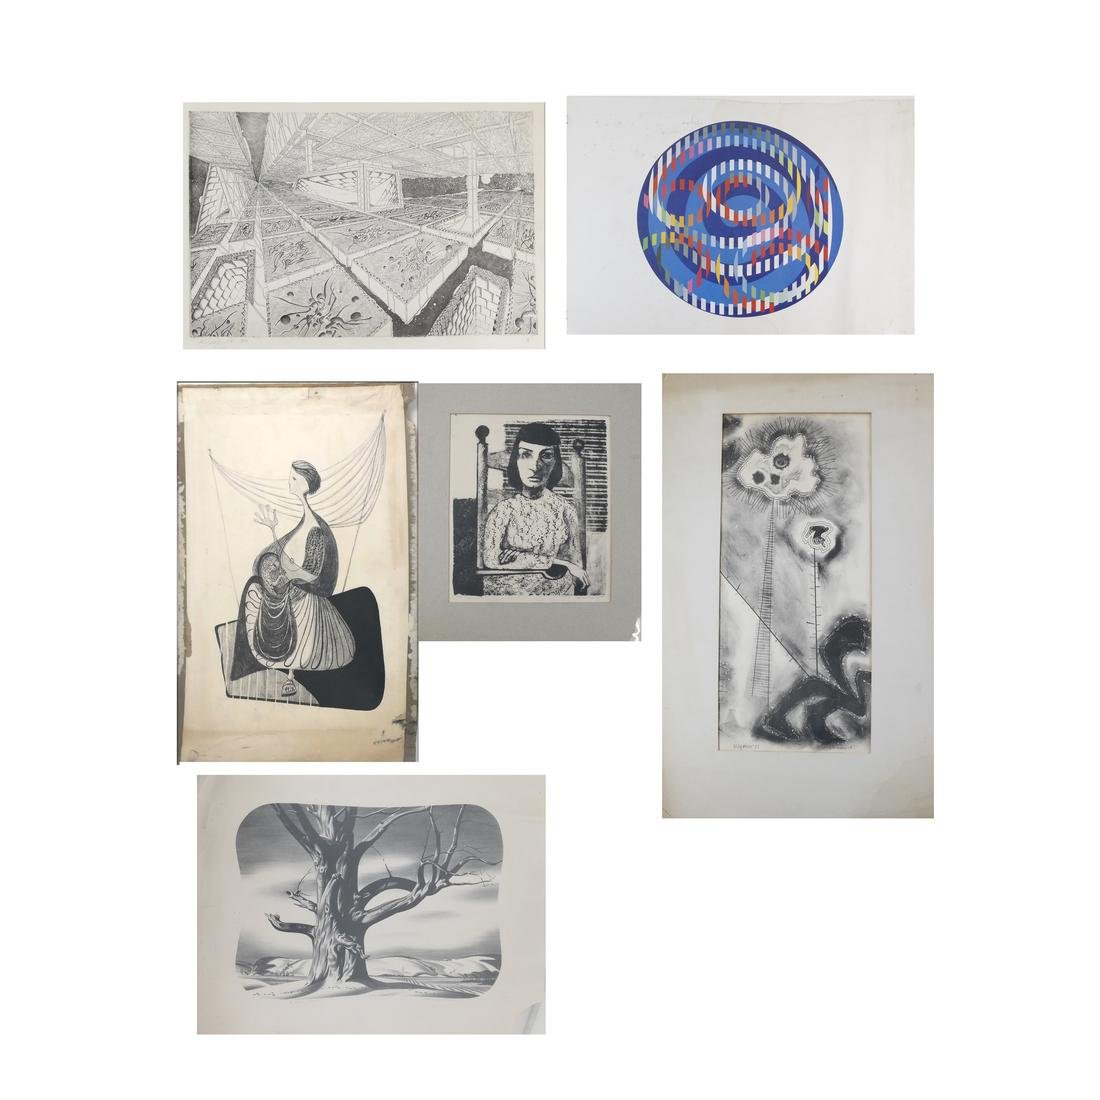 Agam Lithograph, Original Drawings, Early Etchings